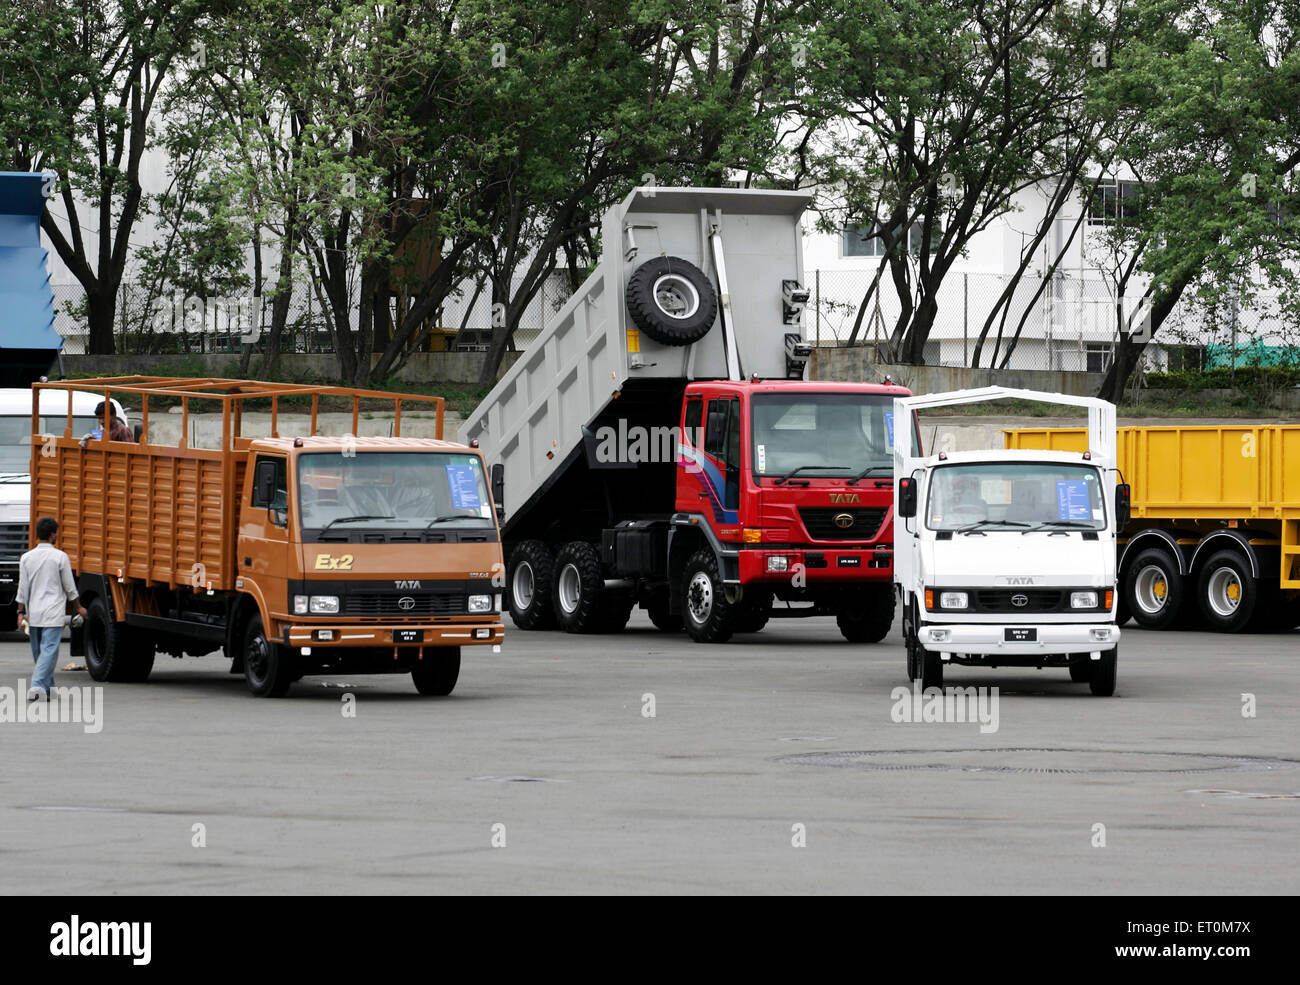 Various commercial products like matadors ; trucks parked at Tata motors plant ; Pimpri near Pune ; Maharashtra - Stock Image